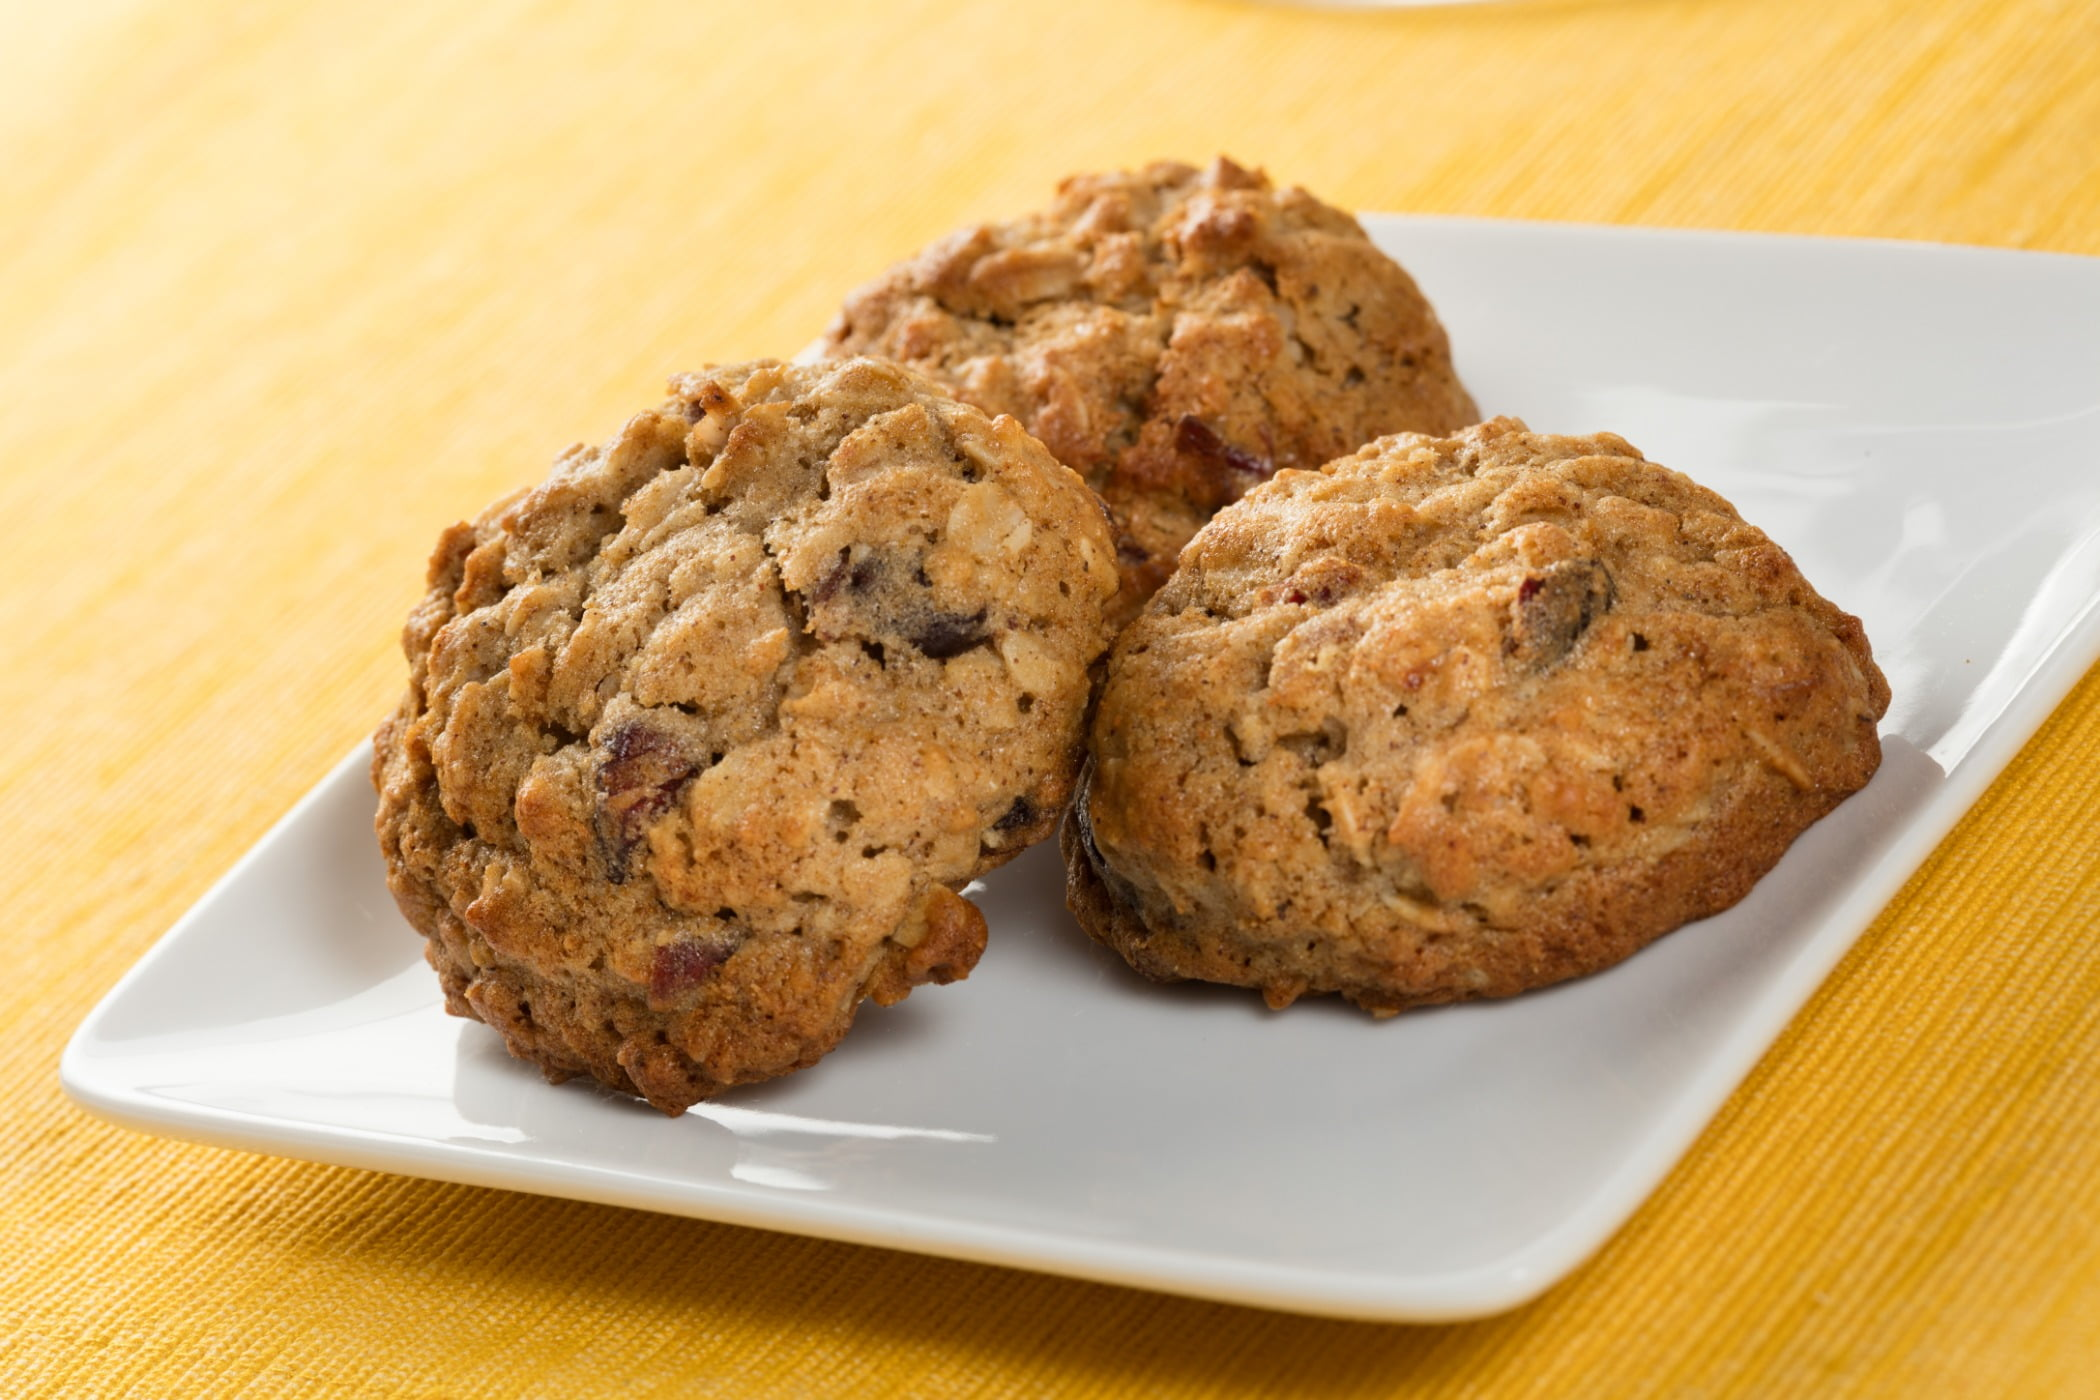 Cookies and crackers, Baked goods, Finger food, Cookie, Cooking, Snack, Dish, Cuisine, Dessert